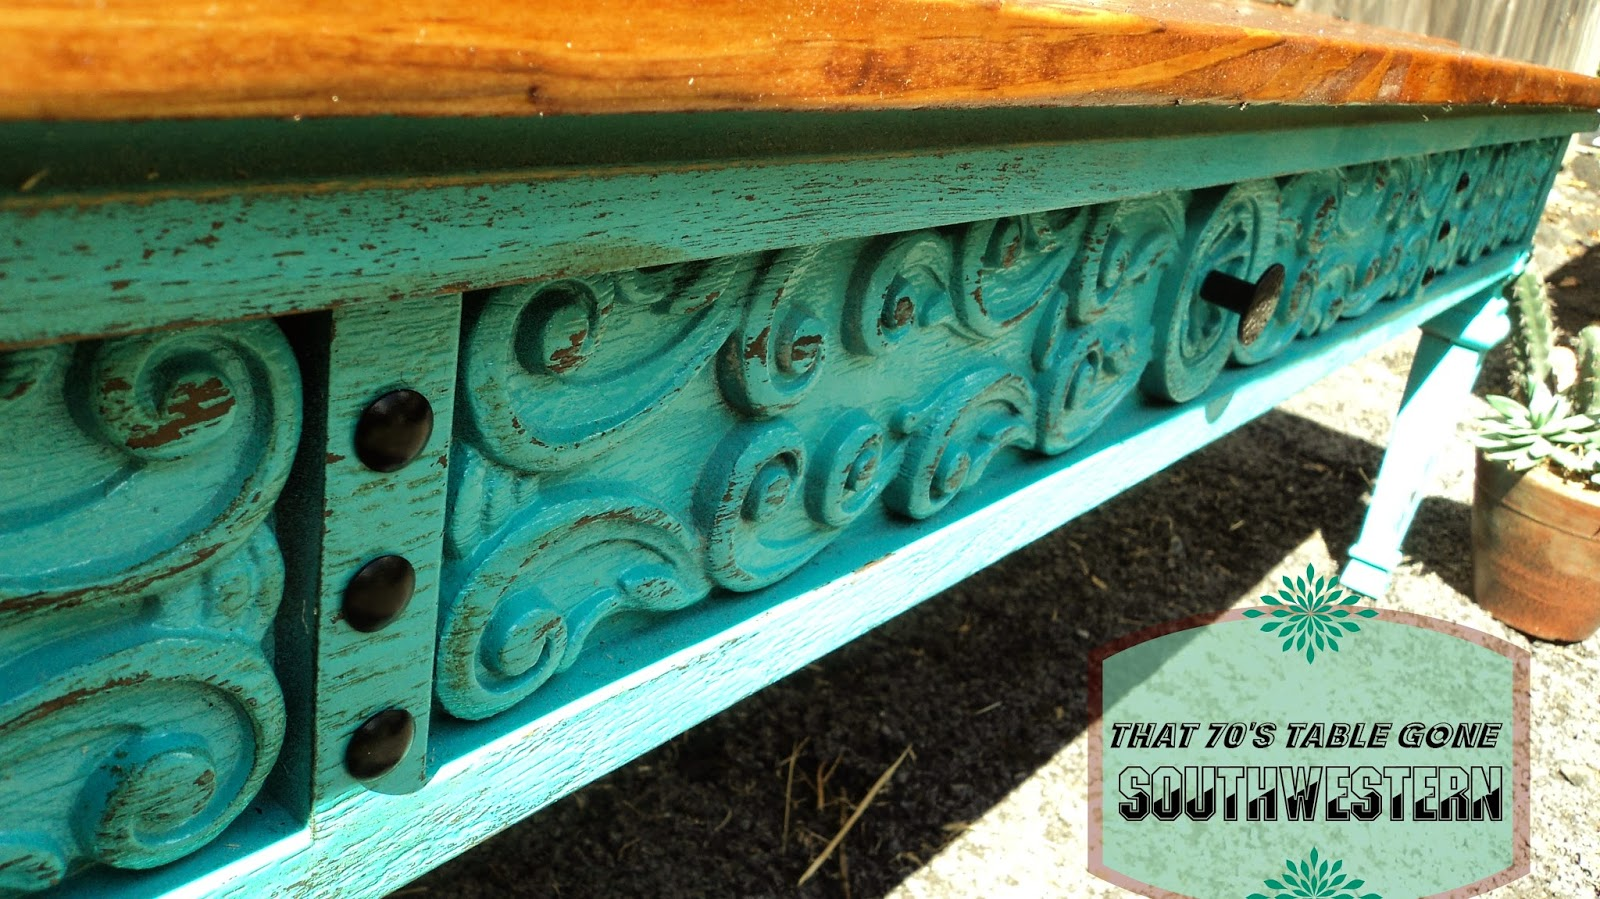 http://redoityourselfinspirations.blogspot.com/2014/09/using-pallets-70s-coffee-table-redo.html